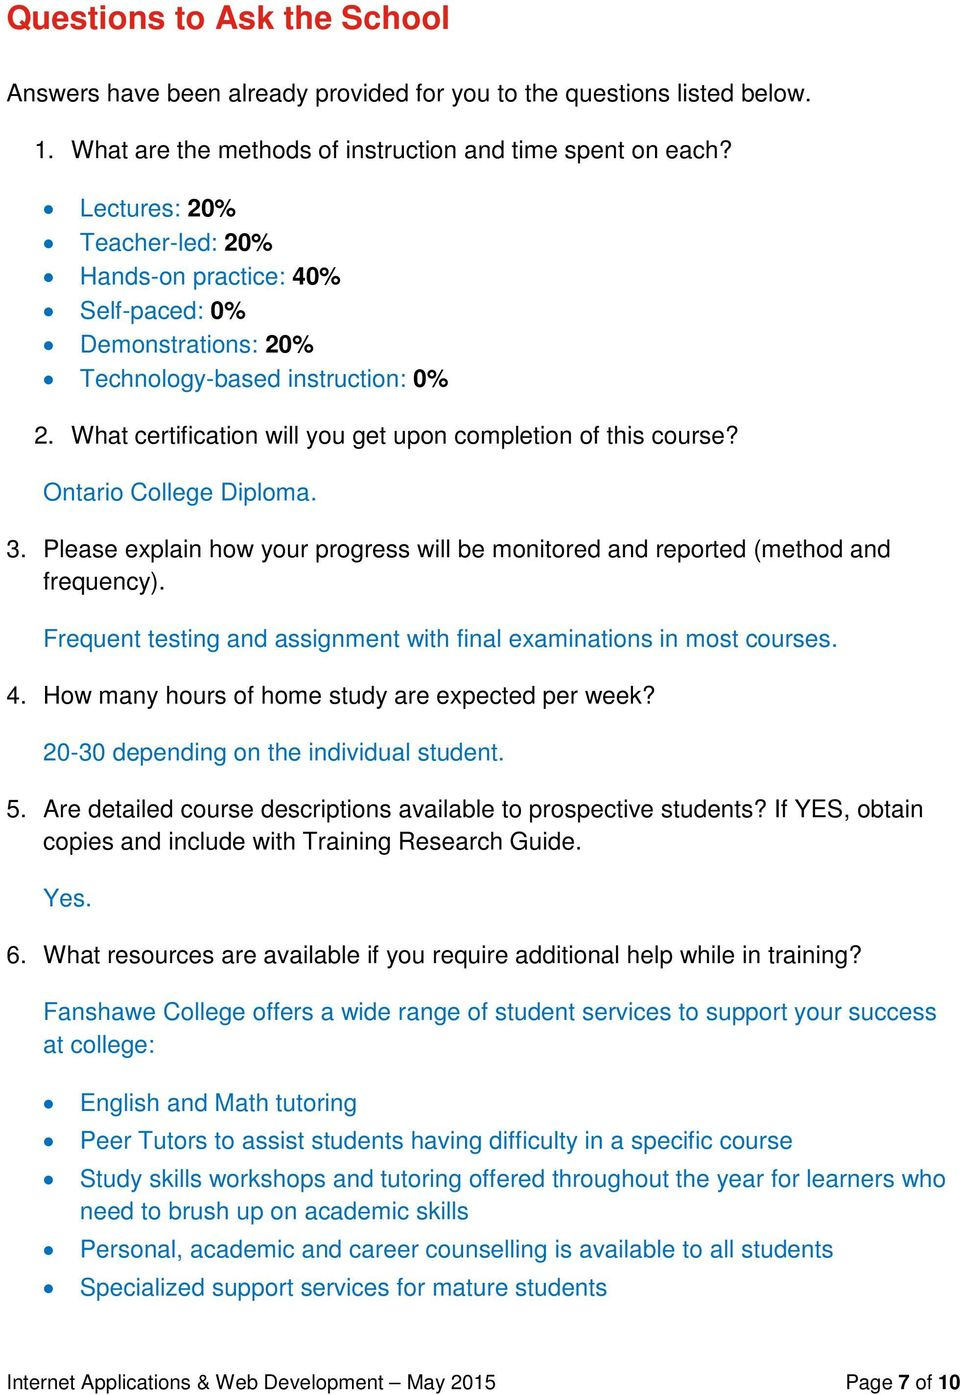 Ontario College Diploma. 3. Please explain how your progress will be monitored and reported (method and frequency). Frequent testing and assignment with final examinations in most courses. 4.